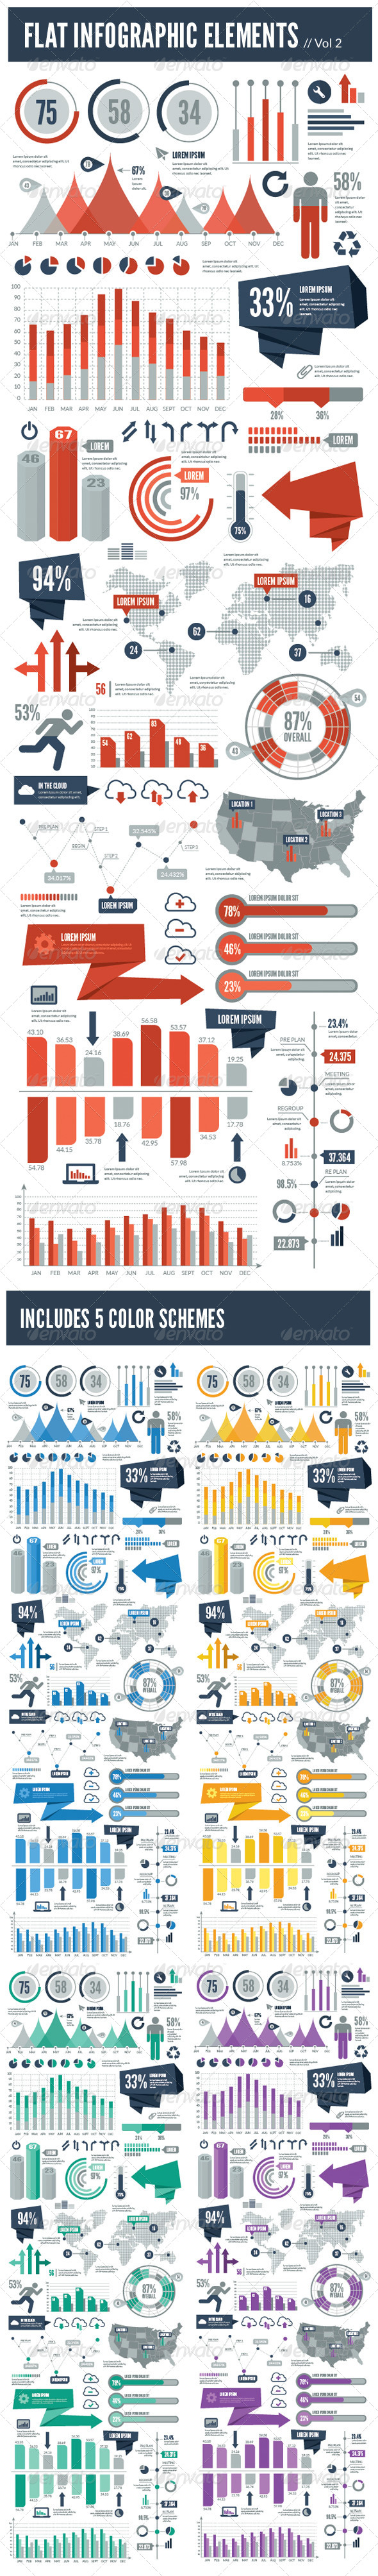 GraphicRiver Flat Vector Infographic Elements Vol 2 7703771